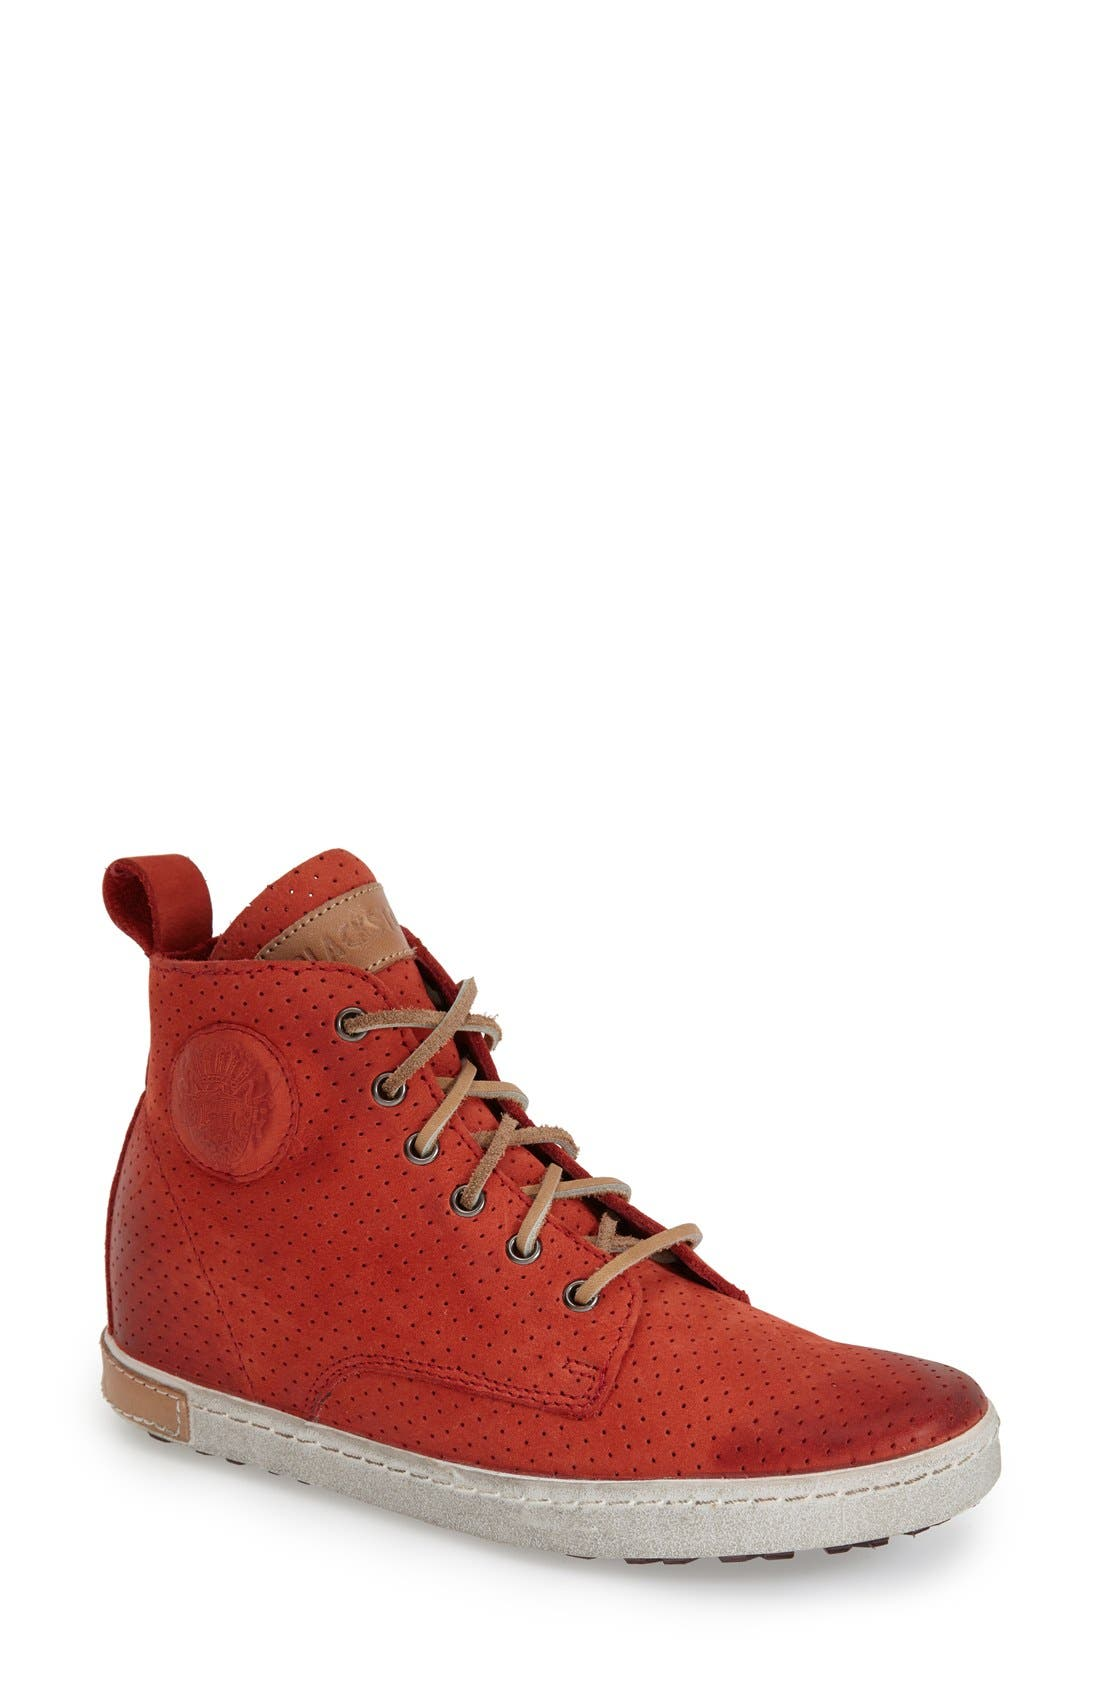 Image of Blackstone Perforated Leather High-Top Sneaker